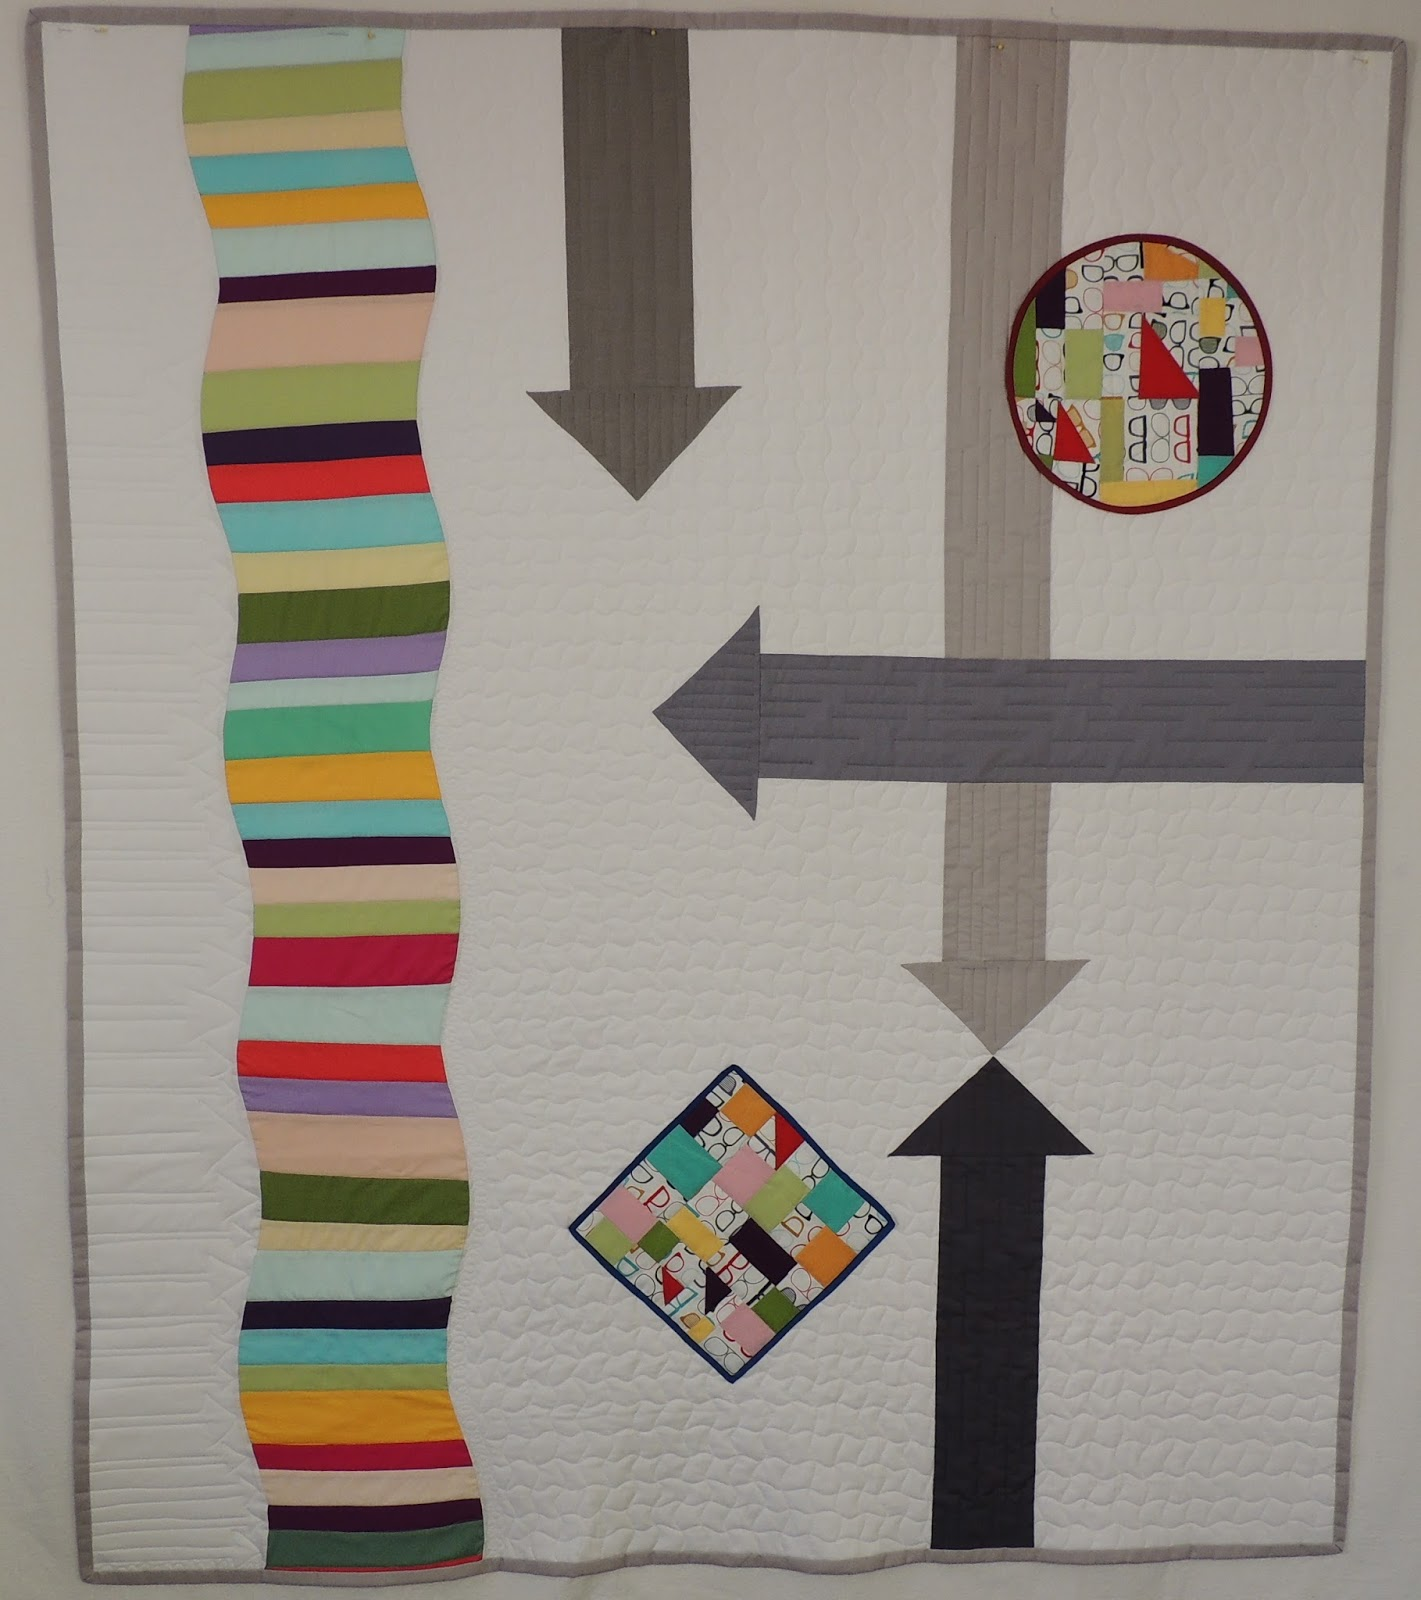 free form quilt piecing  Cspoonquilt: Free Form Curve Piecing